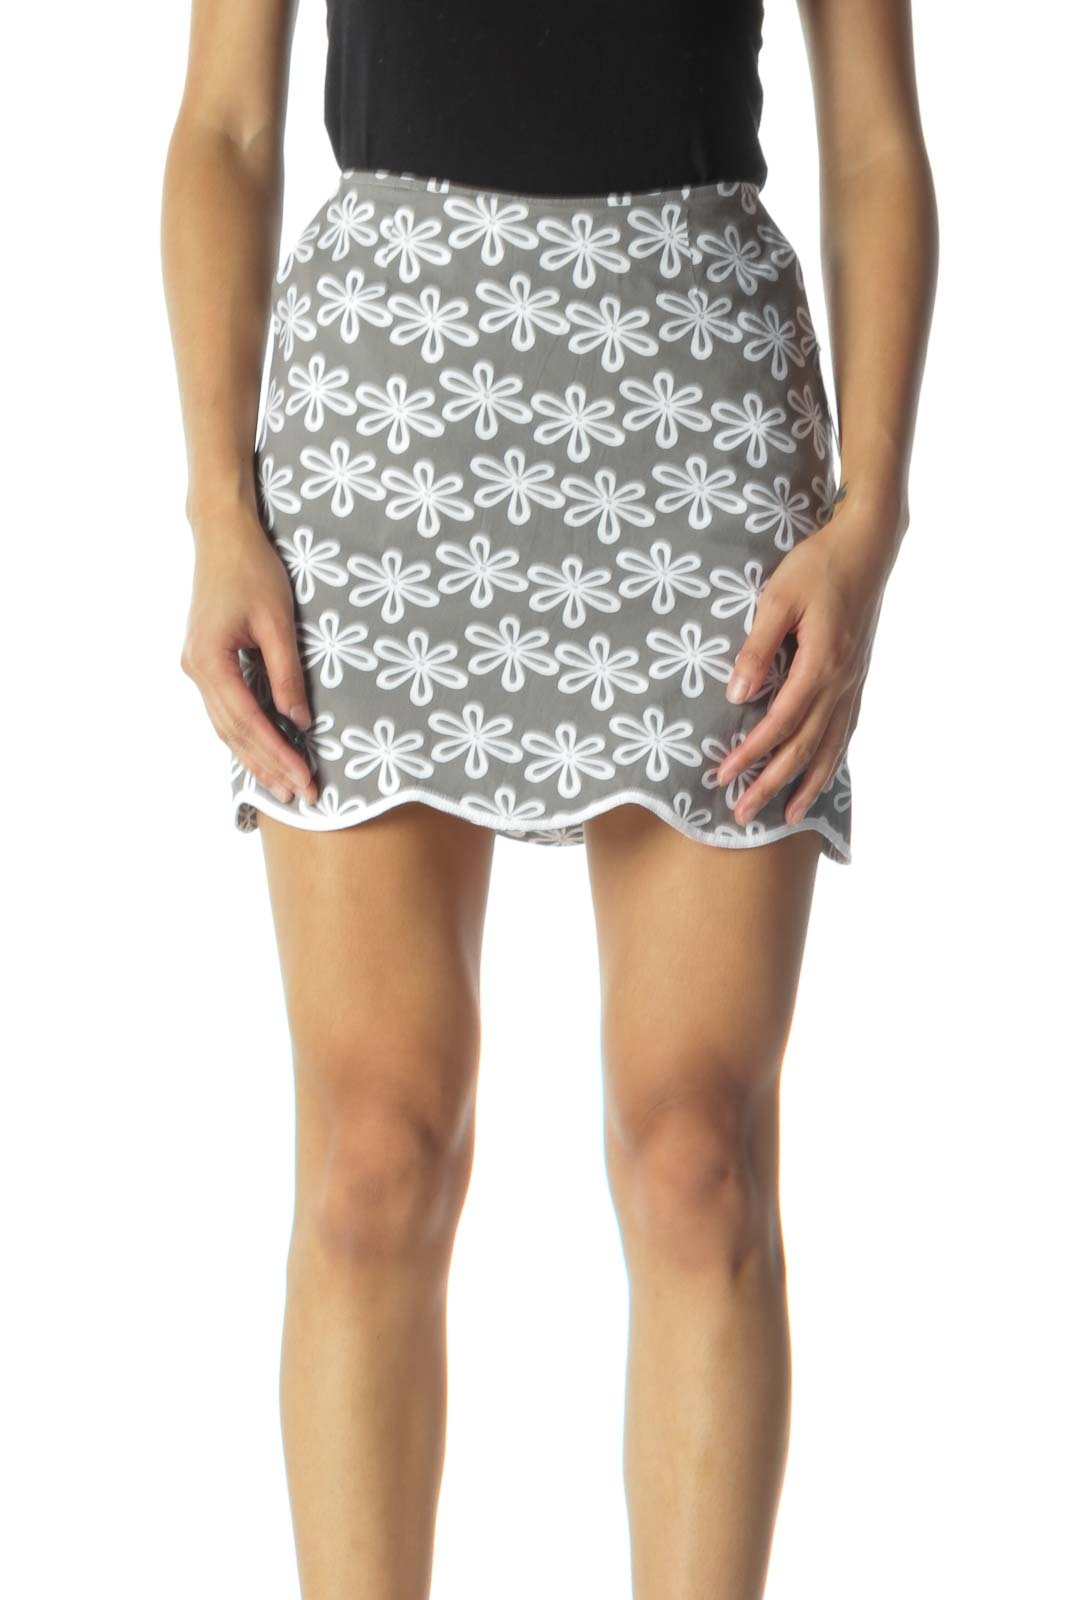 Gray and White Flower Print Scalloped Skirt